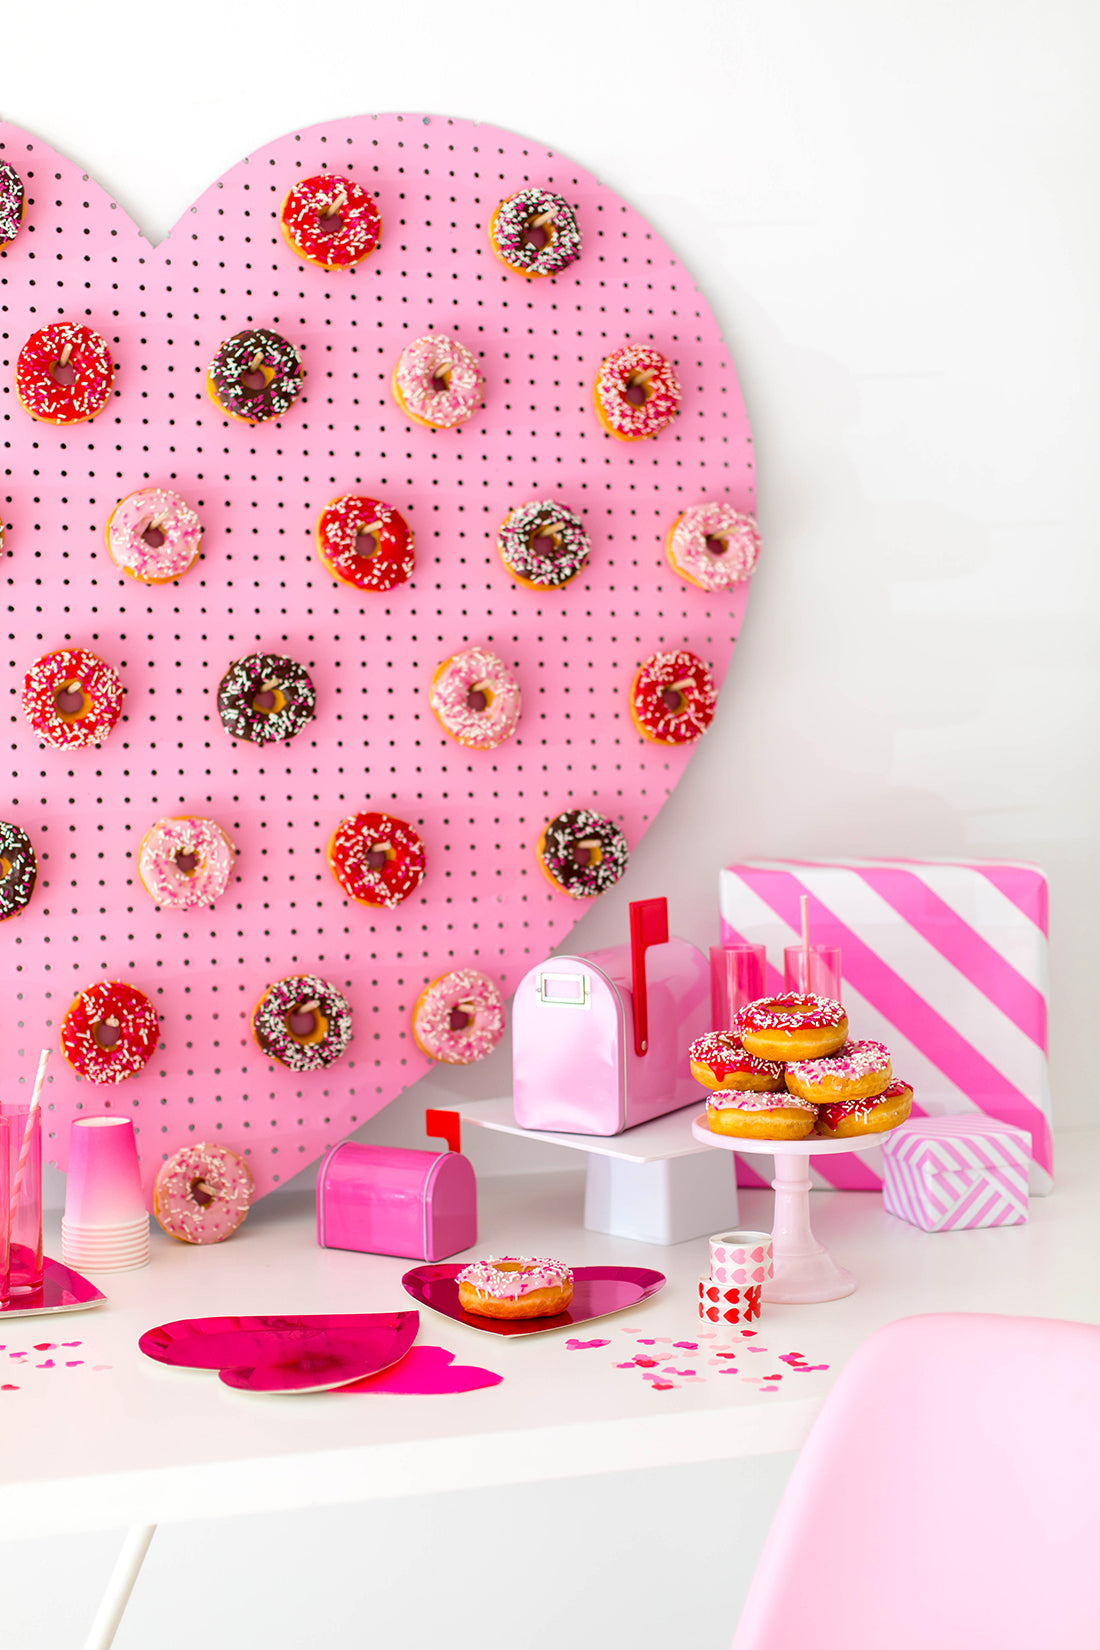 DIY Heart Donut Wall Pegboard for Valentine's Day